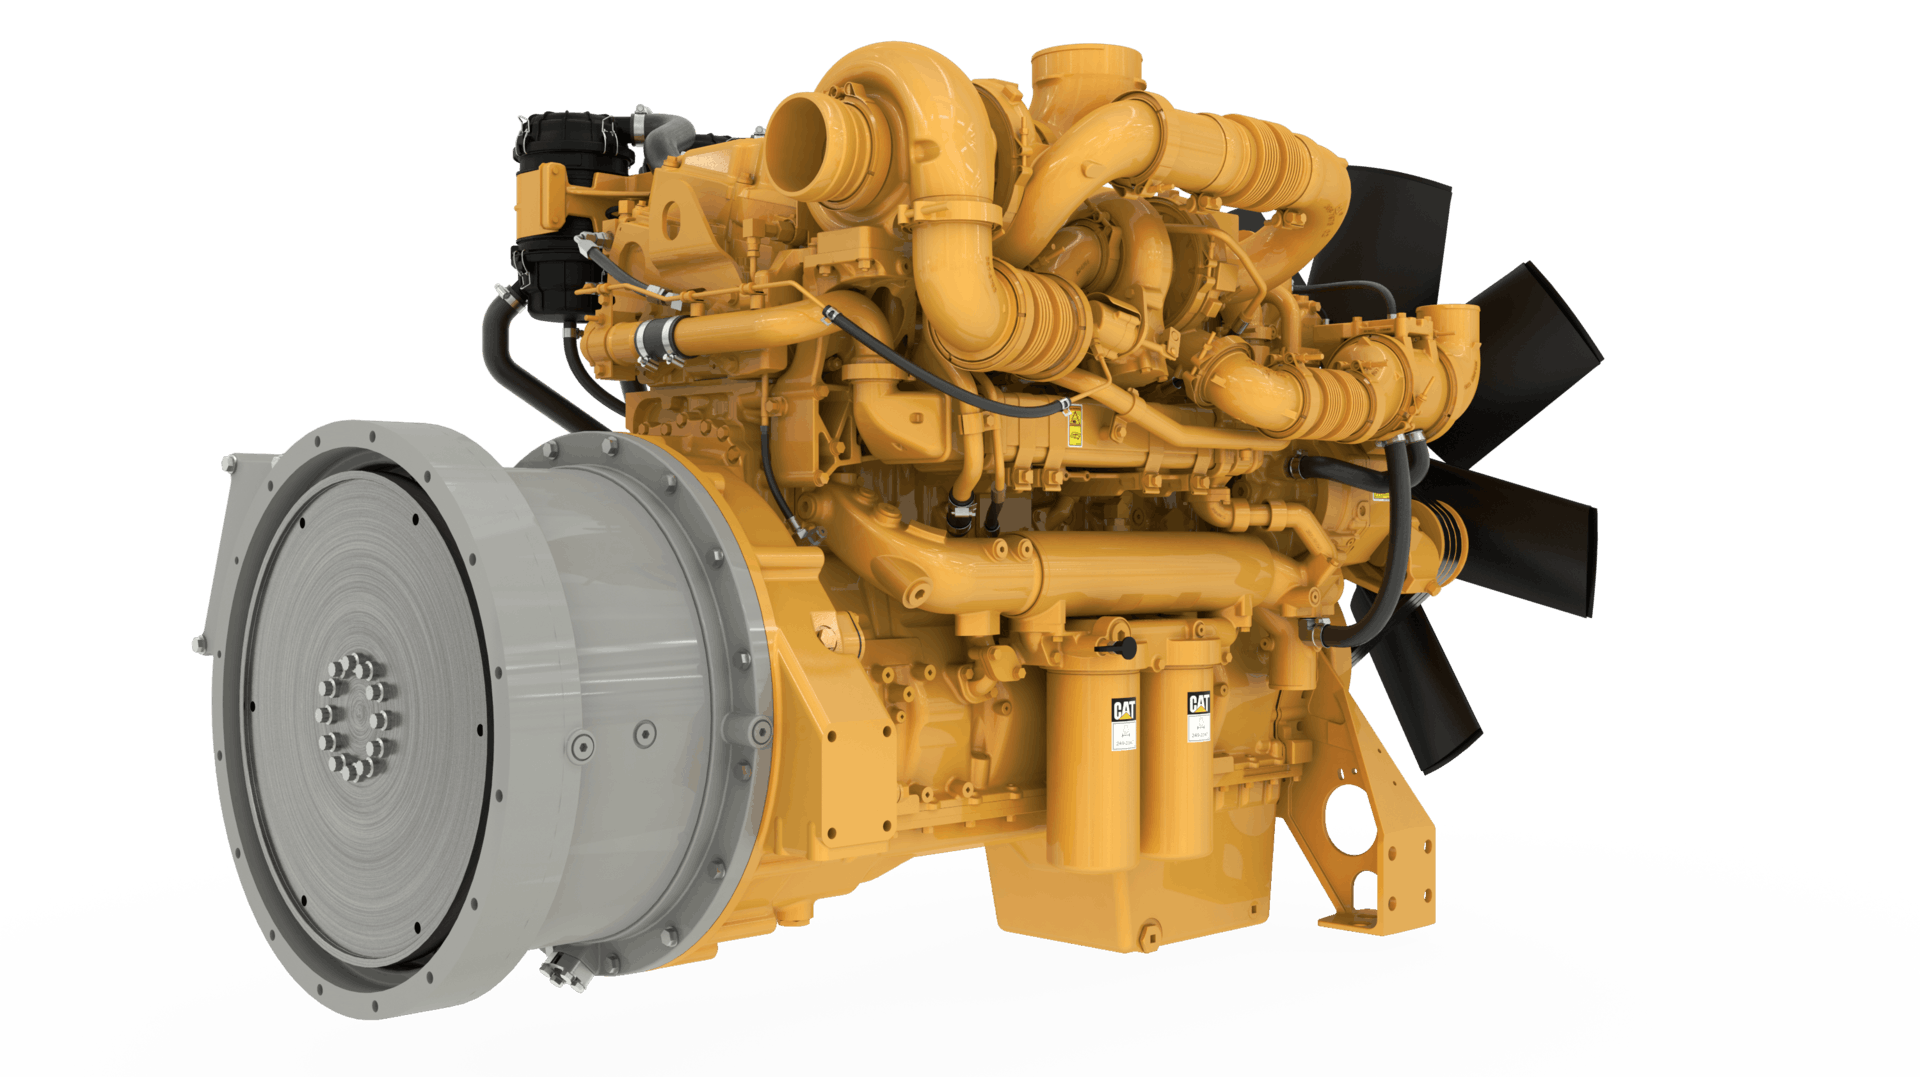 Caterpillar Introduces Hybrid Engine Concept | OEM Off-Highway